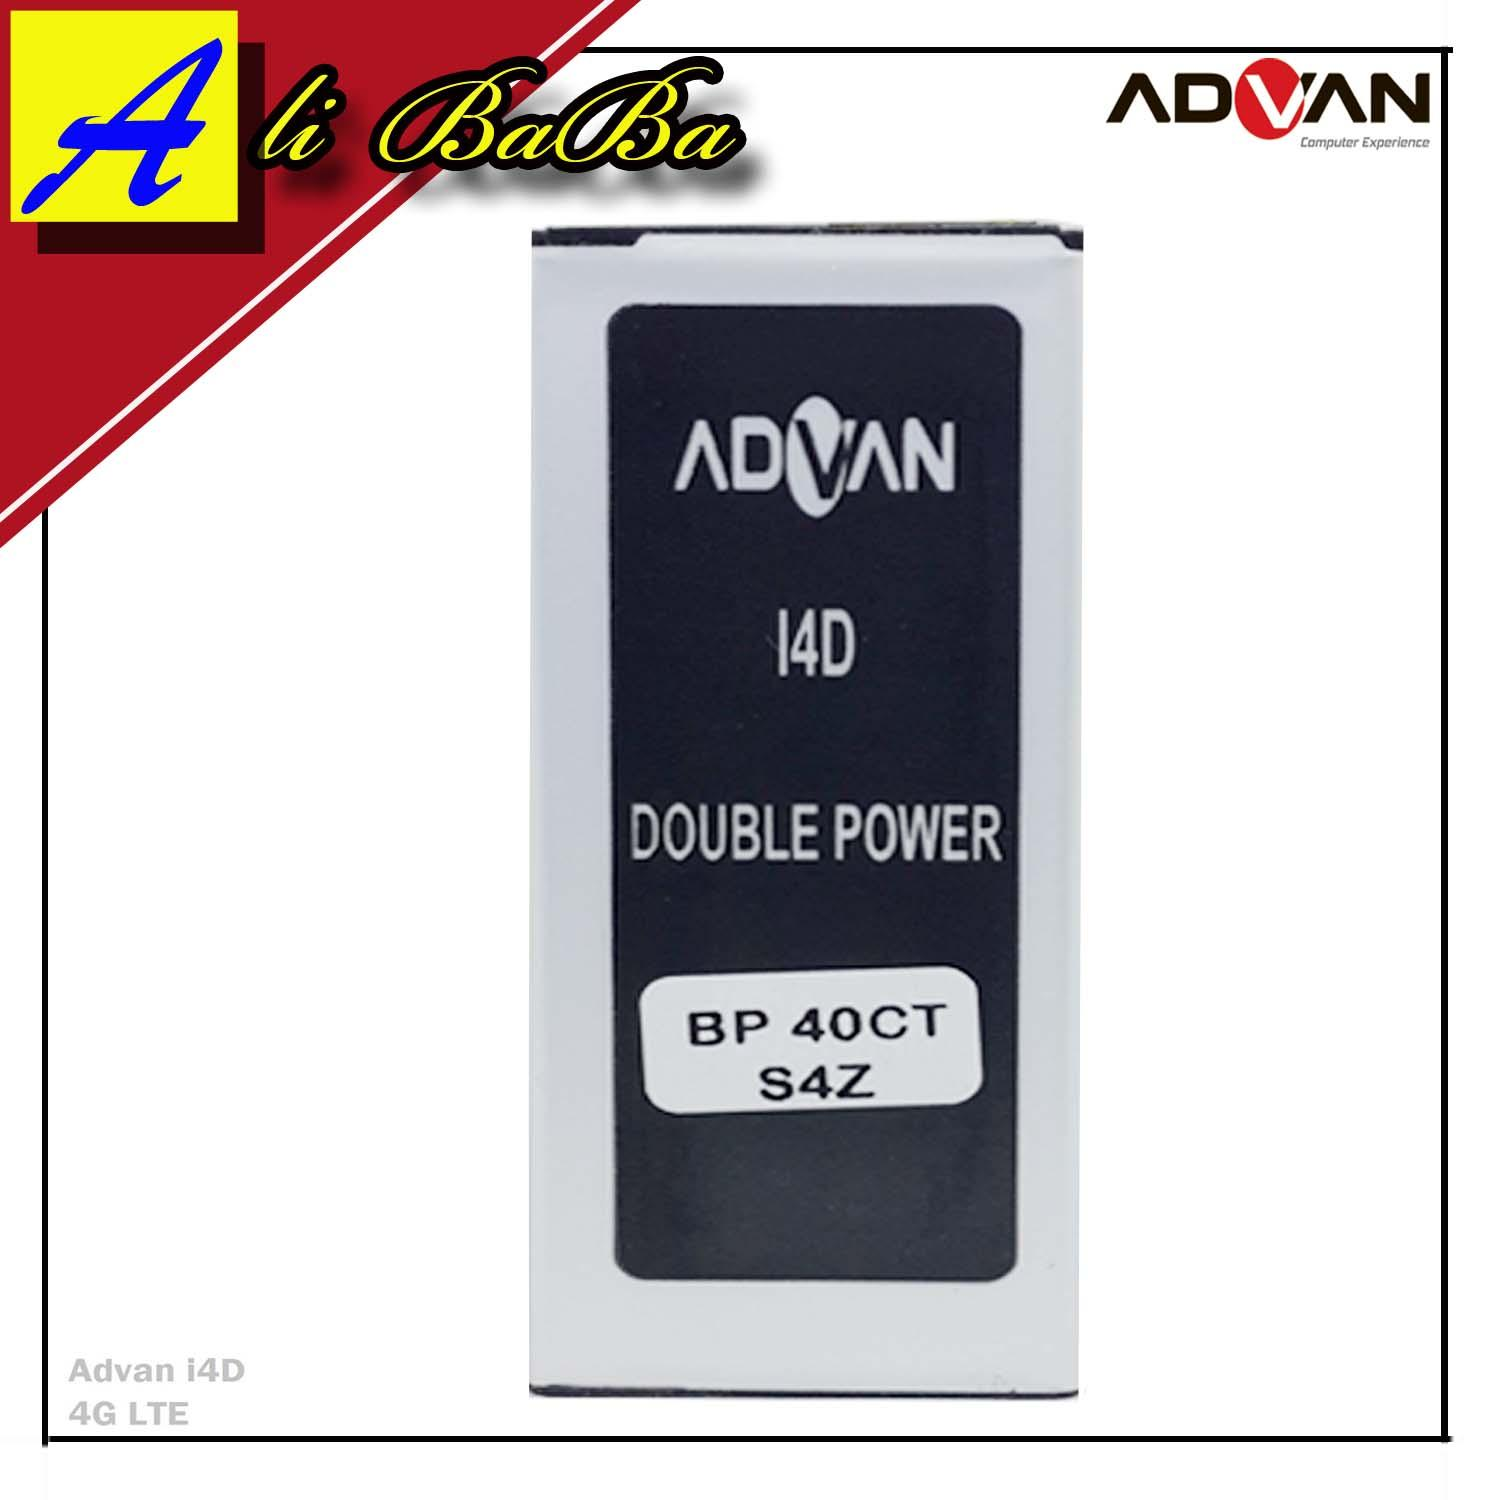 Jual Baterai Handphone Termurah Lengkap Battery Batre Evercoss A5a Advan I4d S4z Bp 40ct Double Power